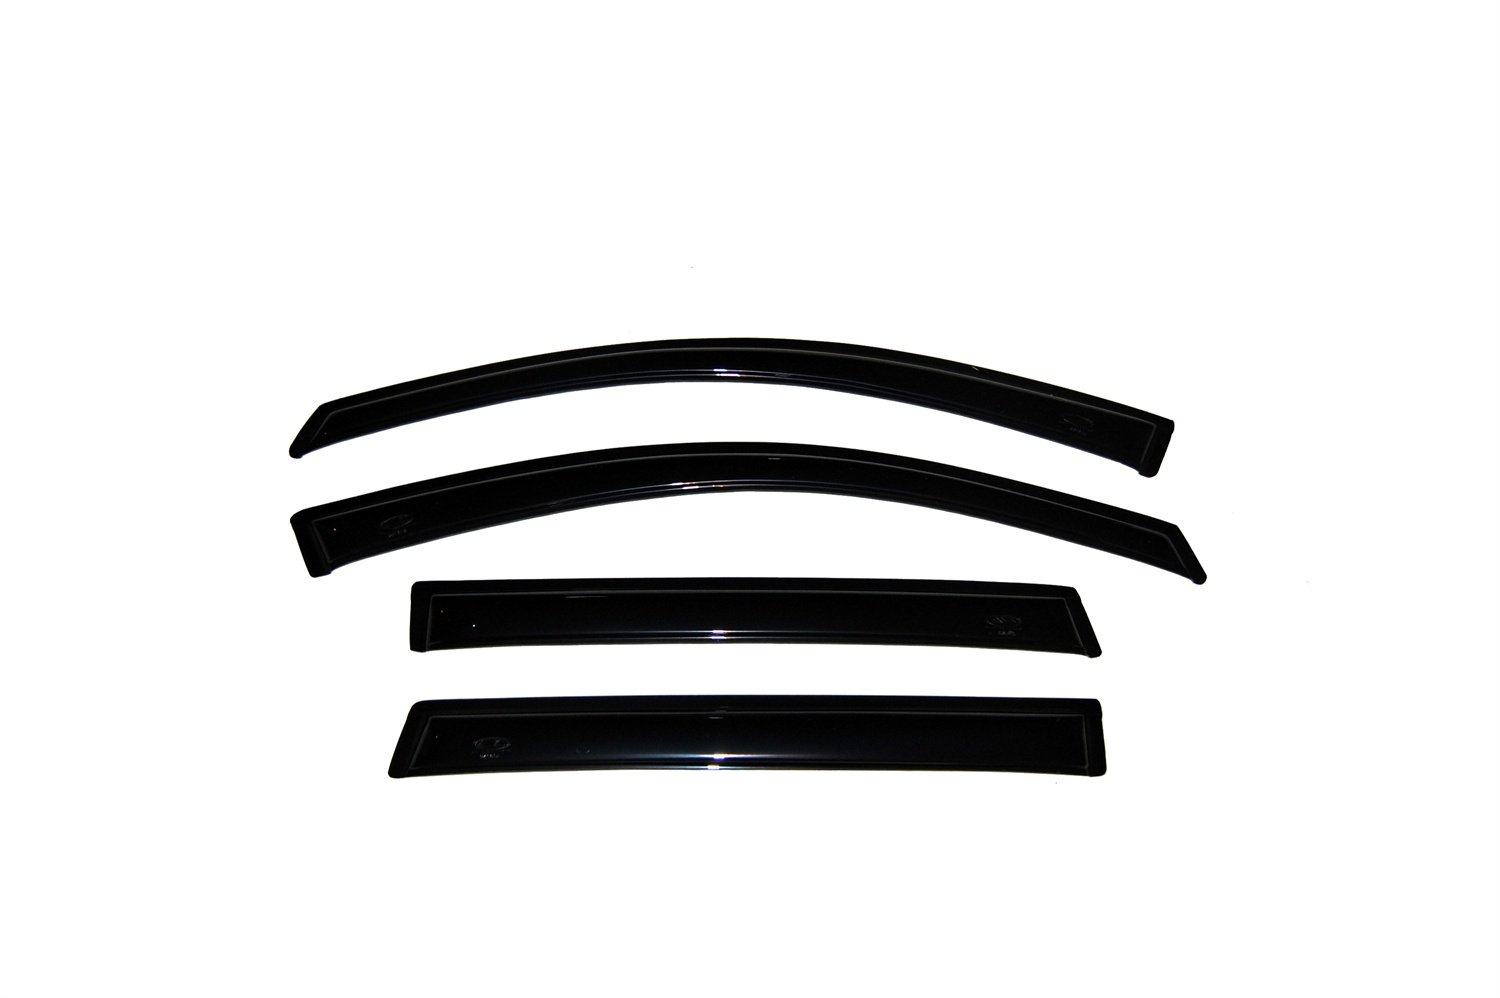 Auto Ventshade 94501 Original Ventvisor Side Window Deflector Dark Smoke, 4-Piece Set for 2005-2009 Hummer H3